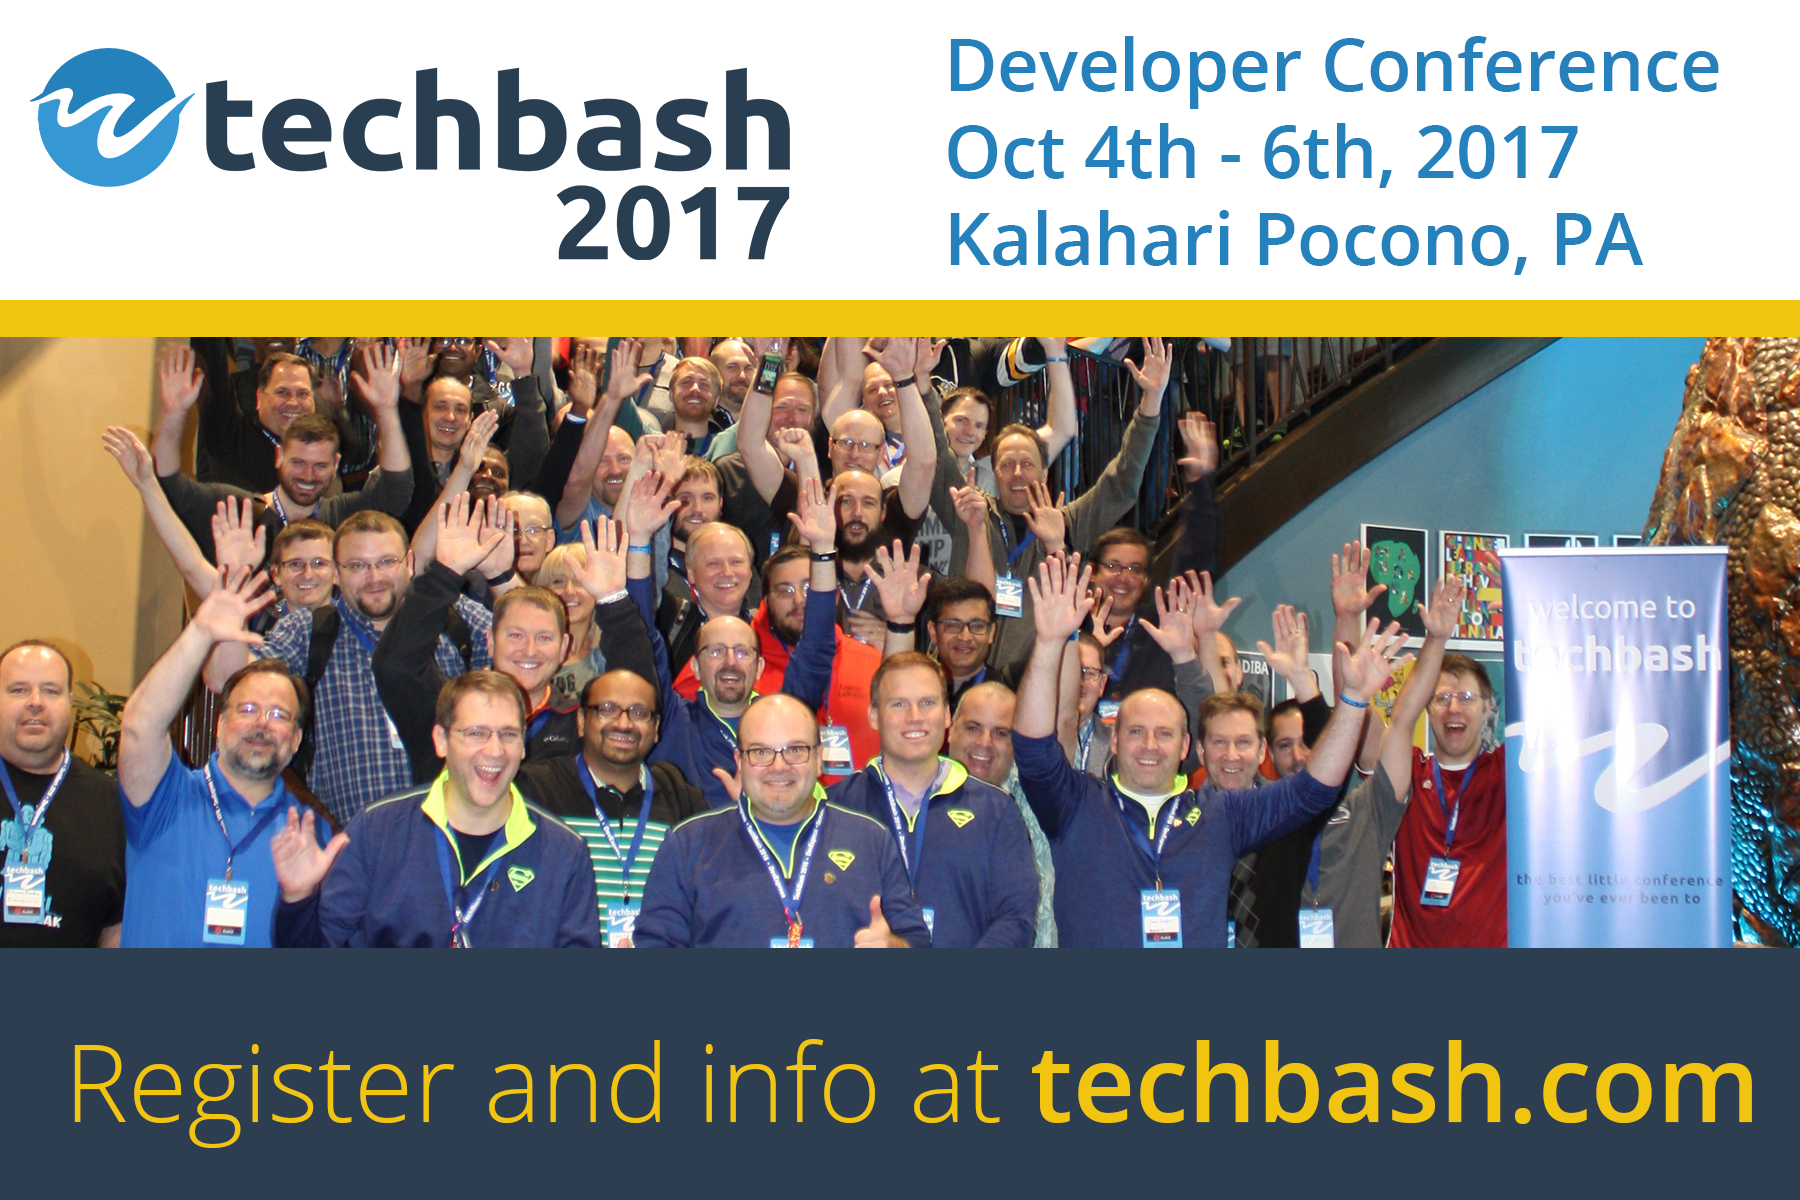 Register for Techbash 2017 developer conference at techbash.com